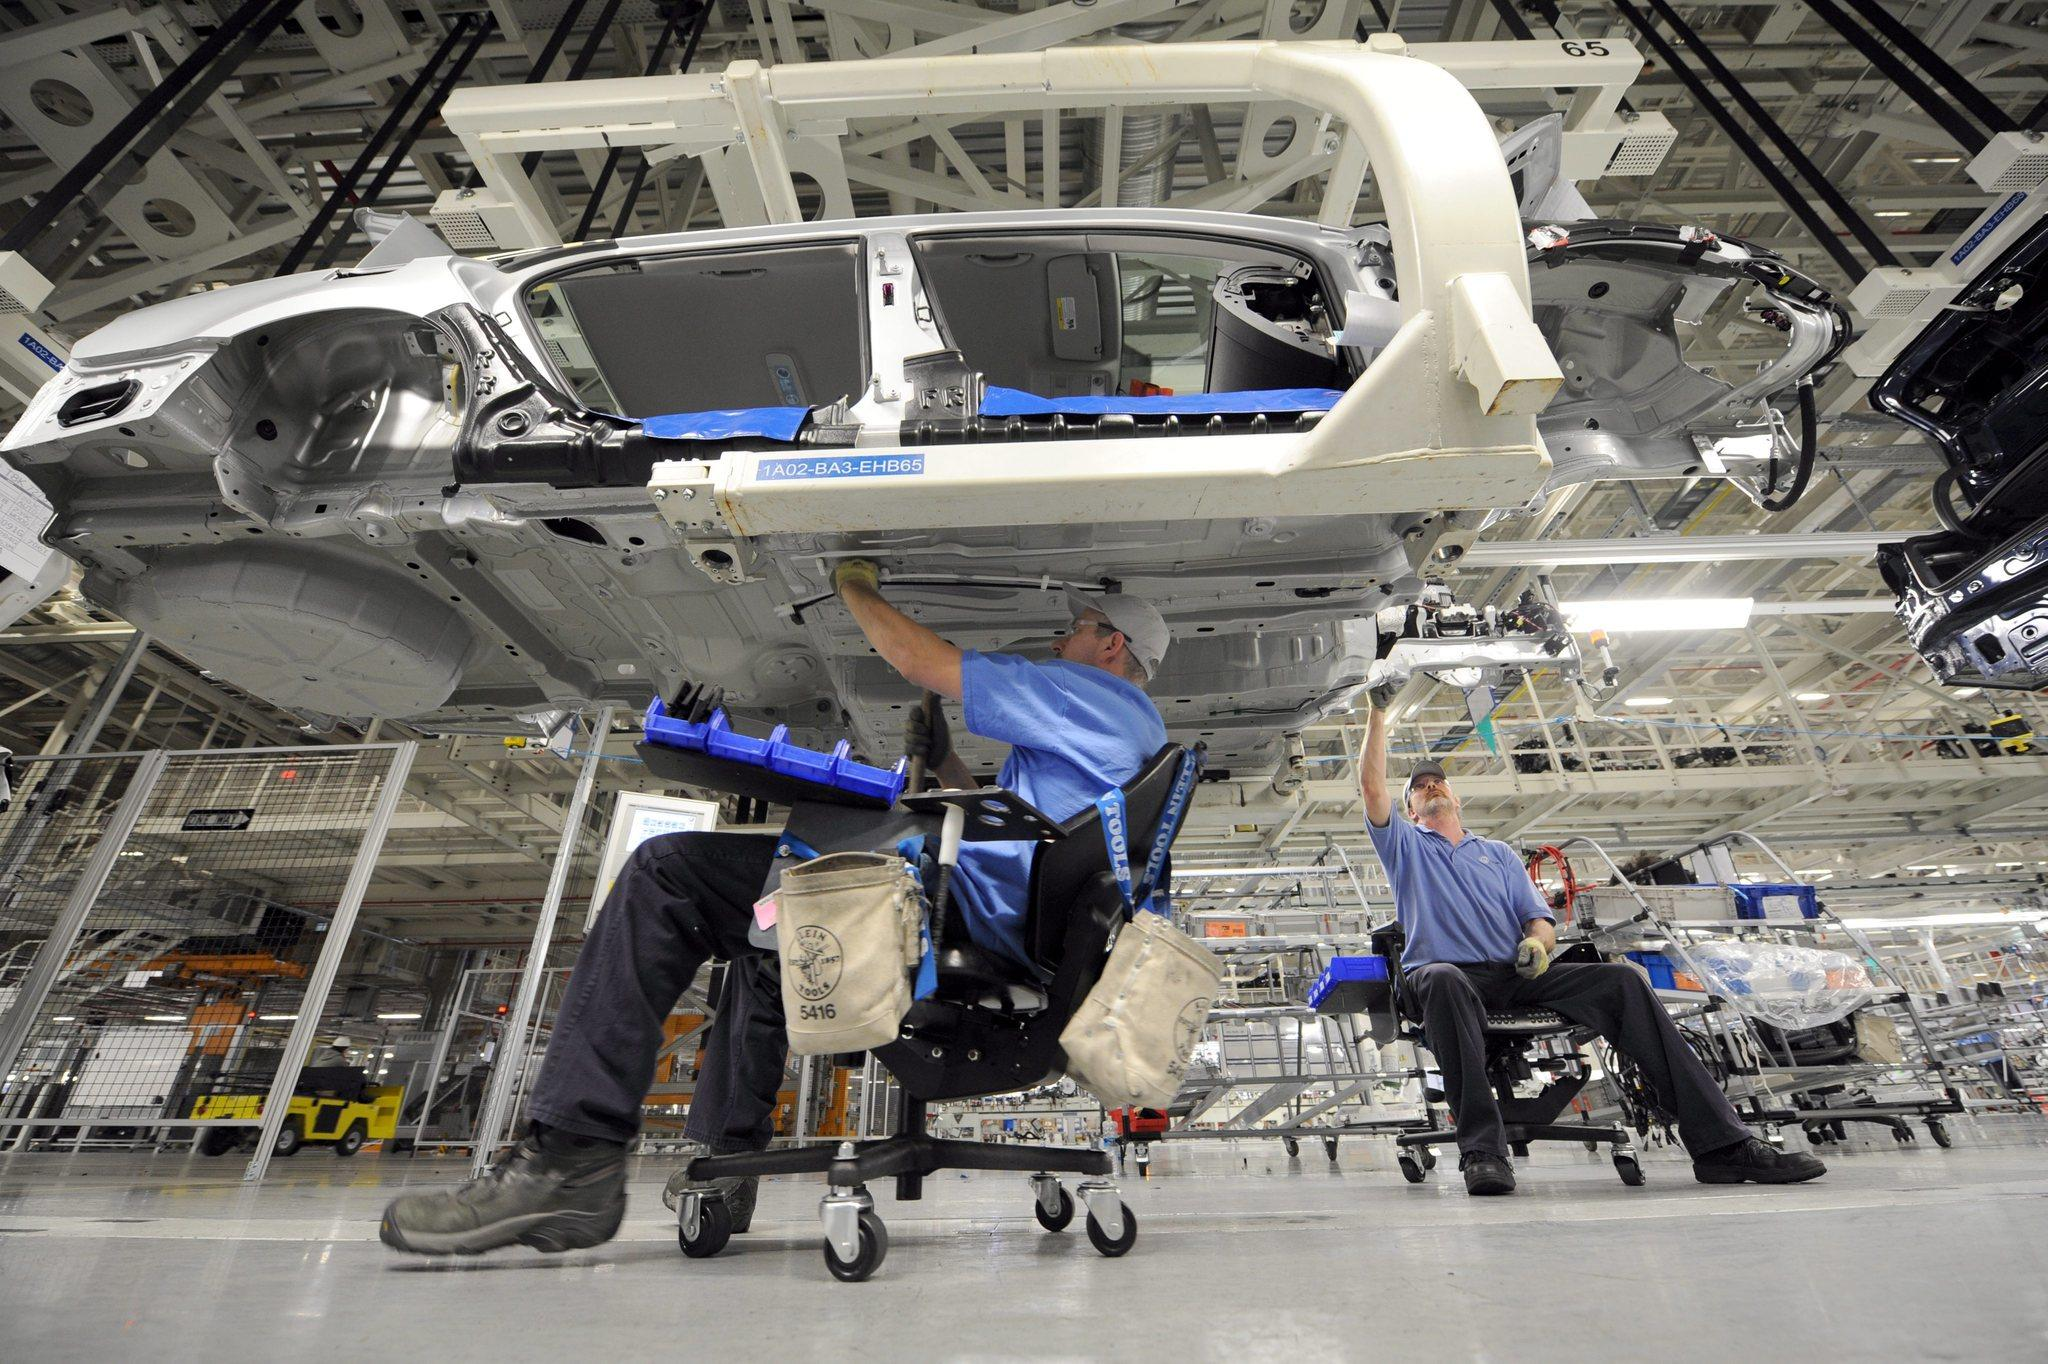 Employees work on the underside of a Passat sedan at the Volkswagen automobile assembly plant in Chattanooga, Tenn.